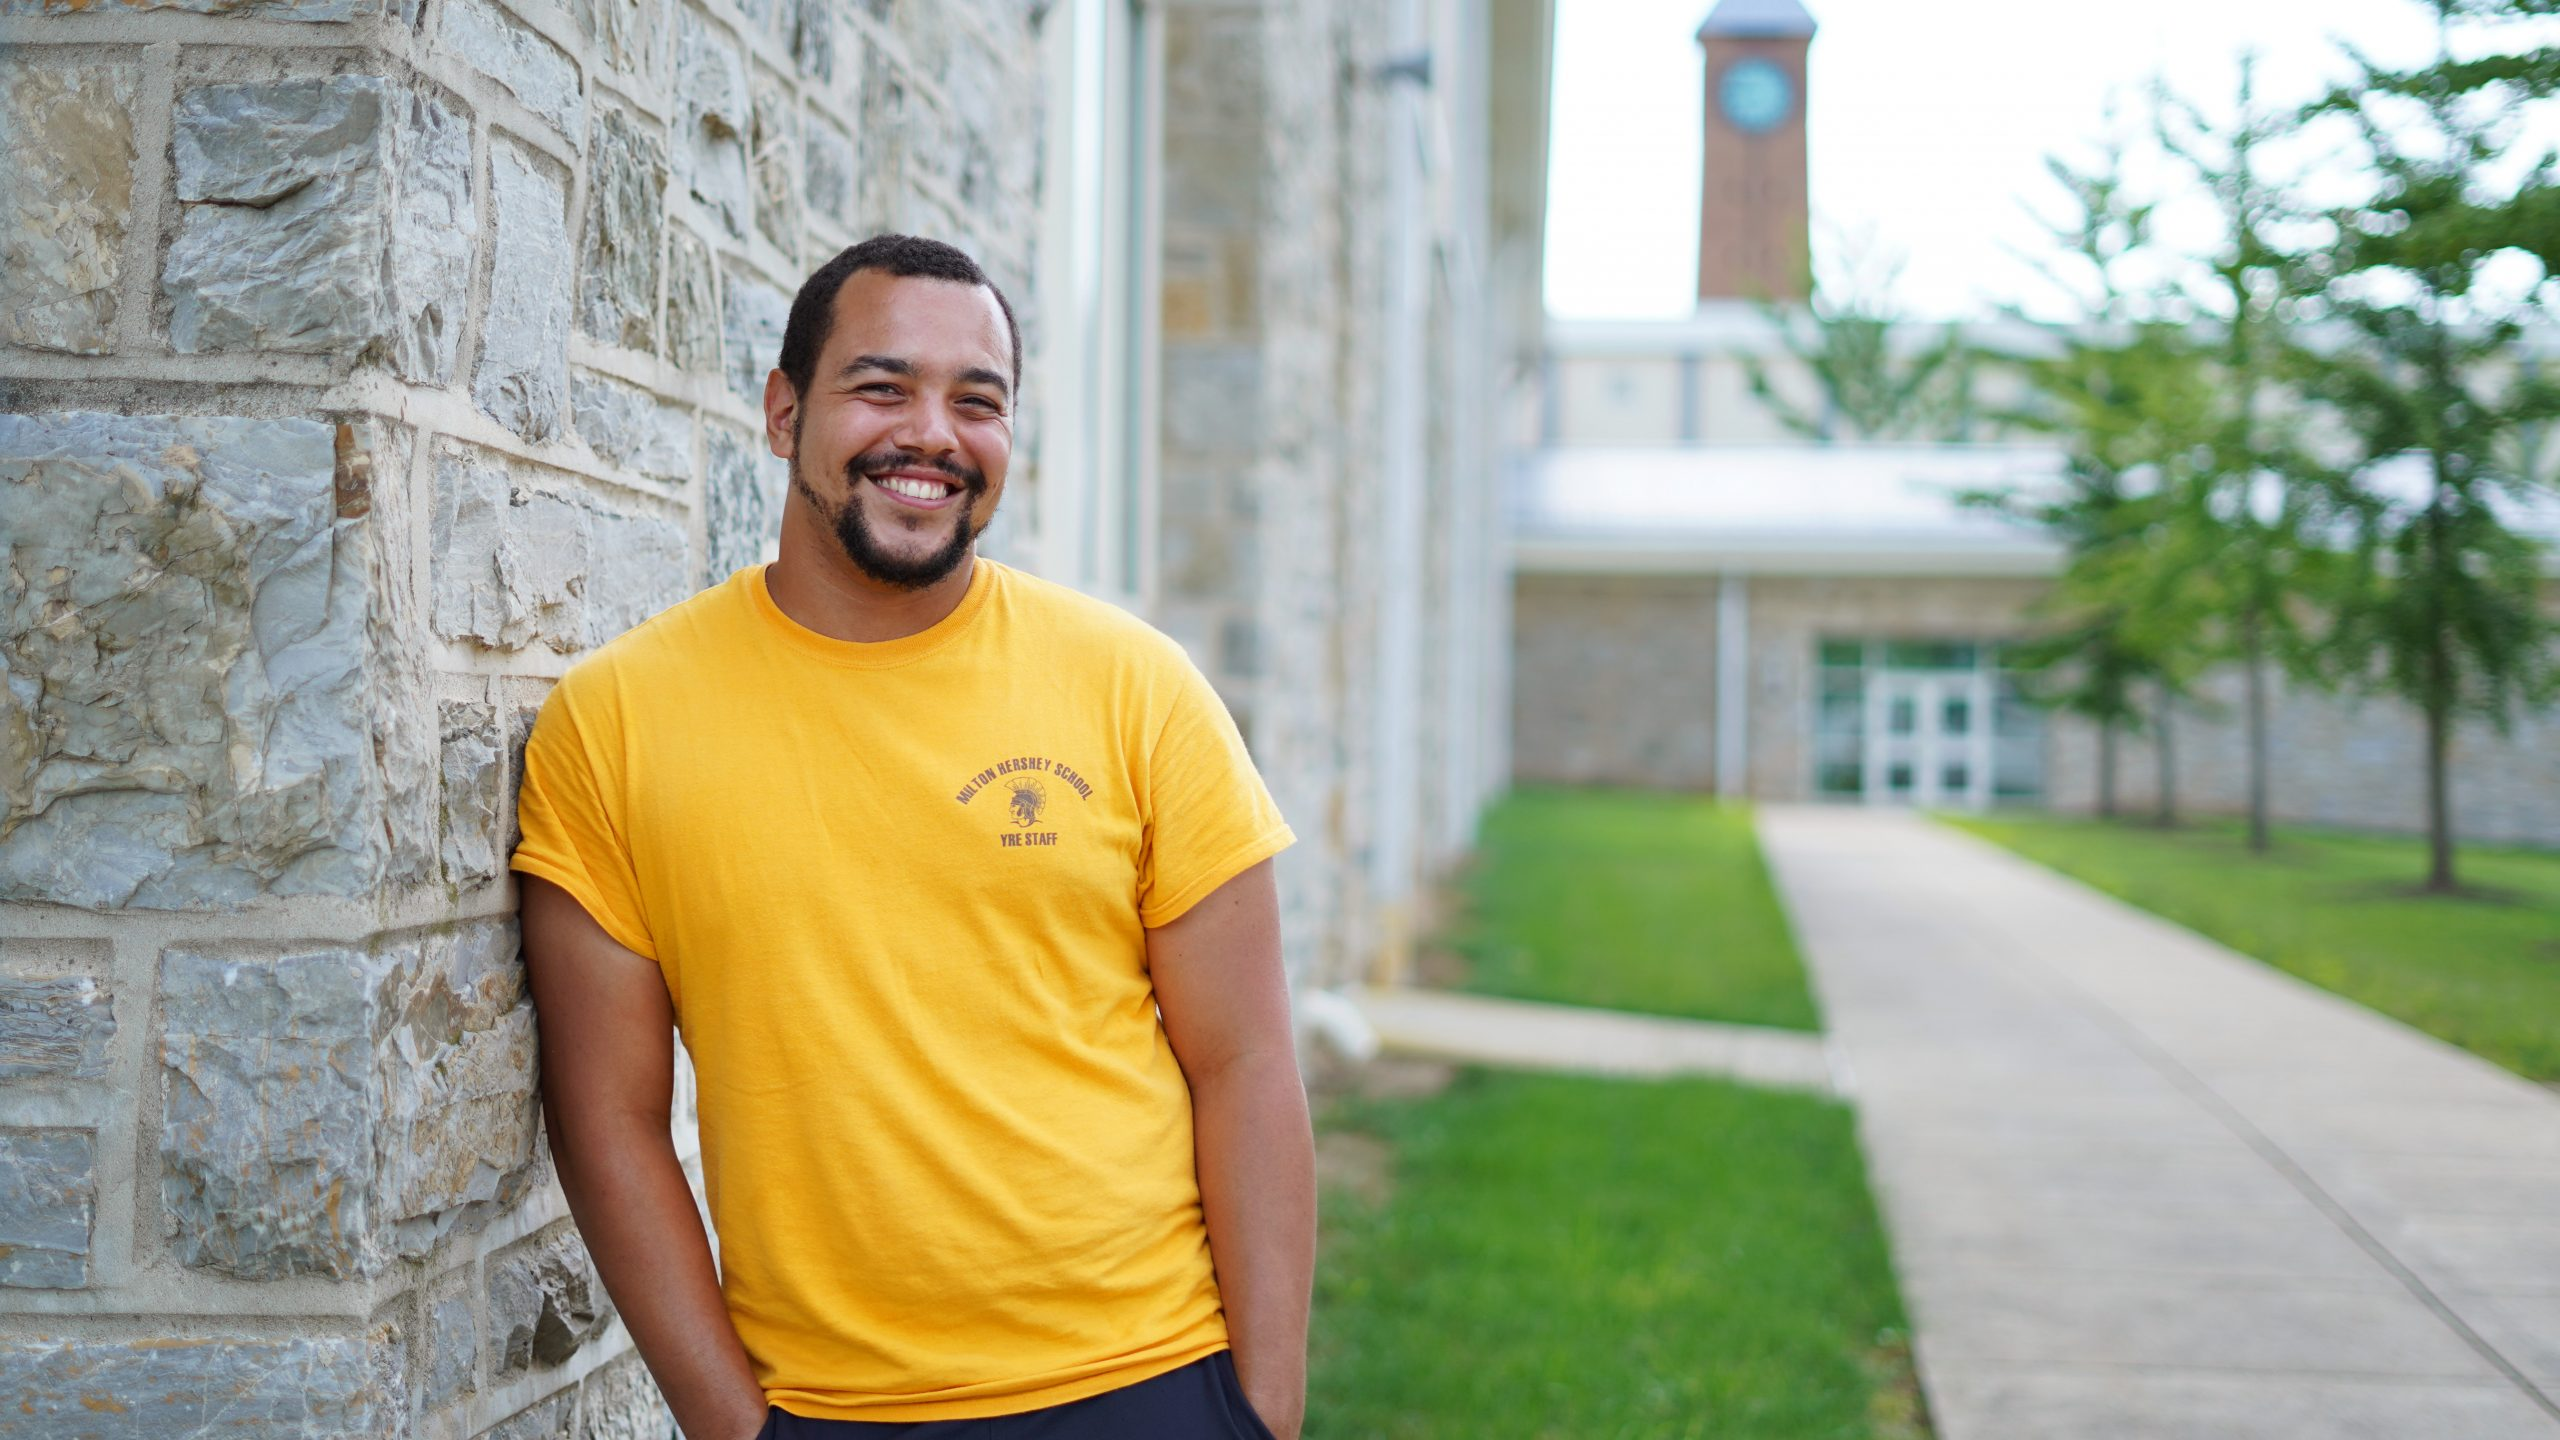 Milton Hershey School alumnus Tylor Teel '11 on campus during the Year-Round Experiences program.